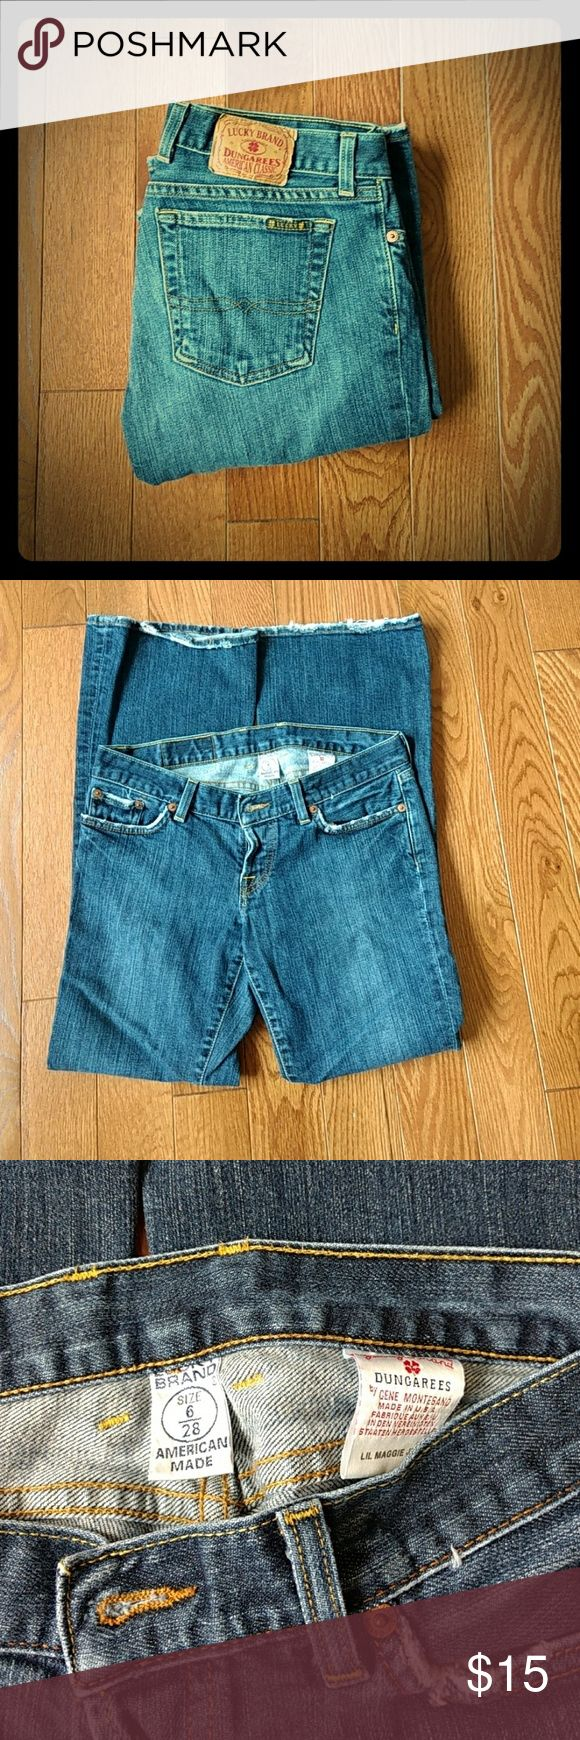 Lucky Jeans Authentic Lucky Jeans 28W 29L Lucky Brand Jeans